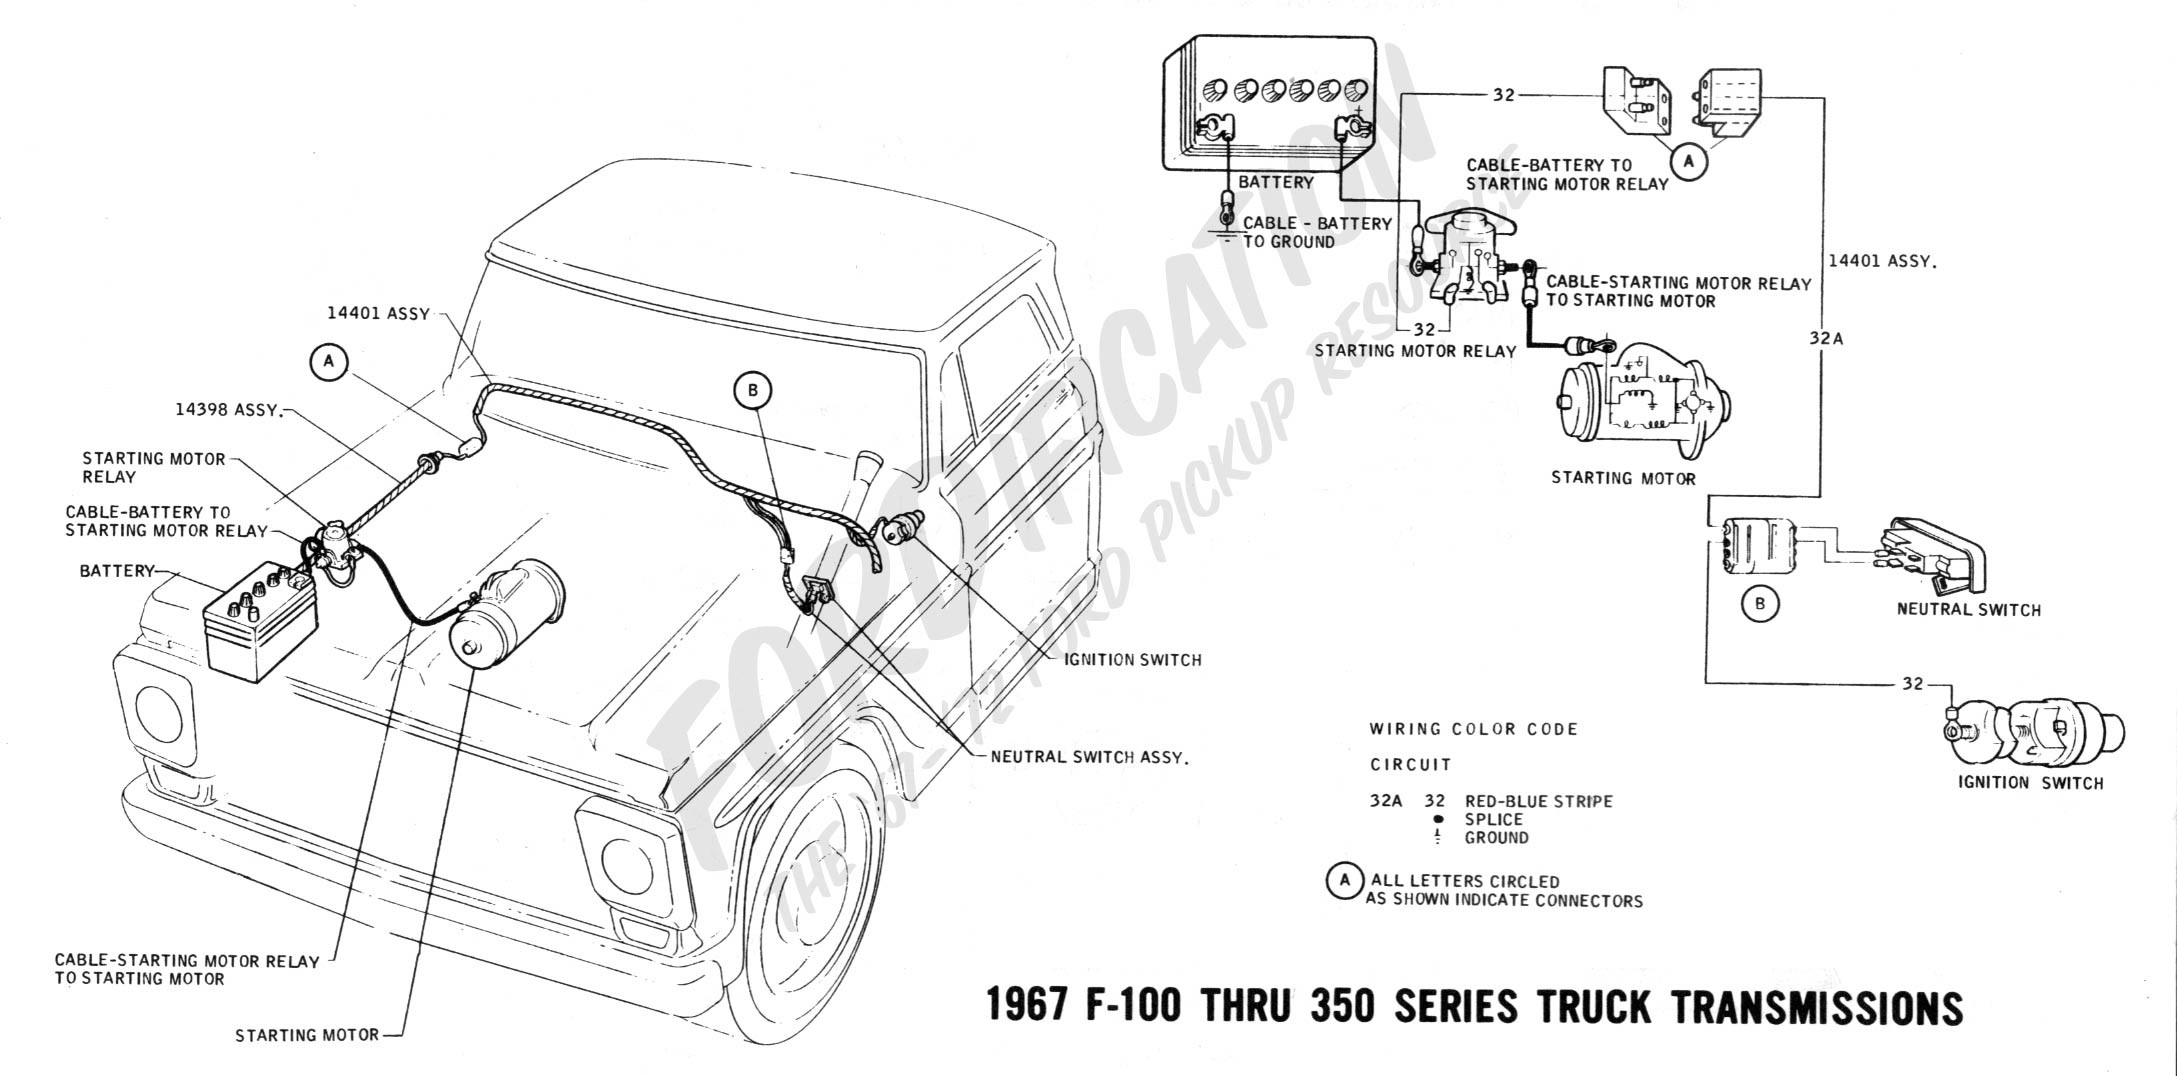 ford f250 starter solenoid wiring diagram Download-1994 ford F150 Starter solenoid Wiring Diagram Awesome Ford F250 Starter solenoid Wiring Diagram Sample 18-f